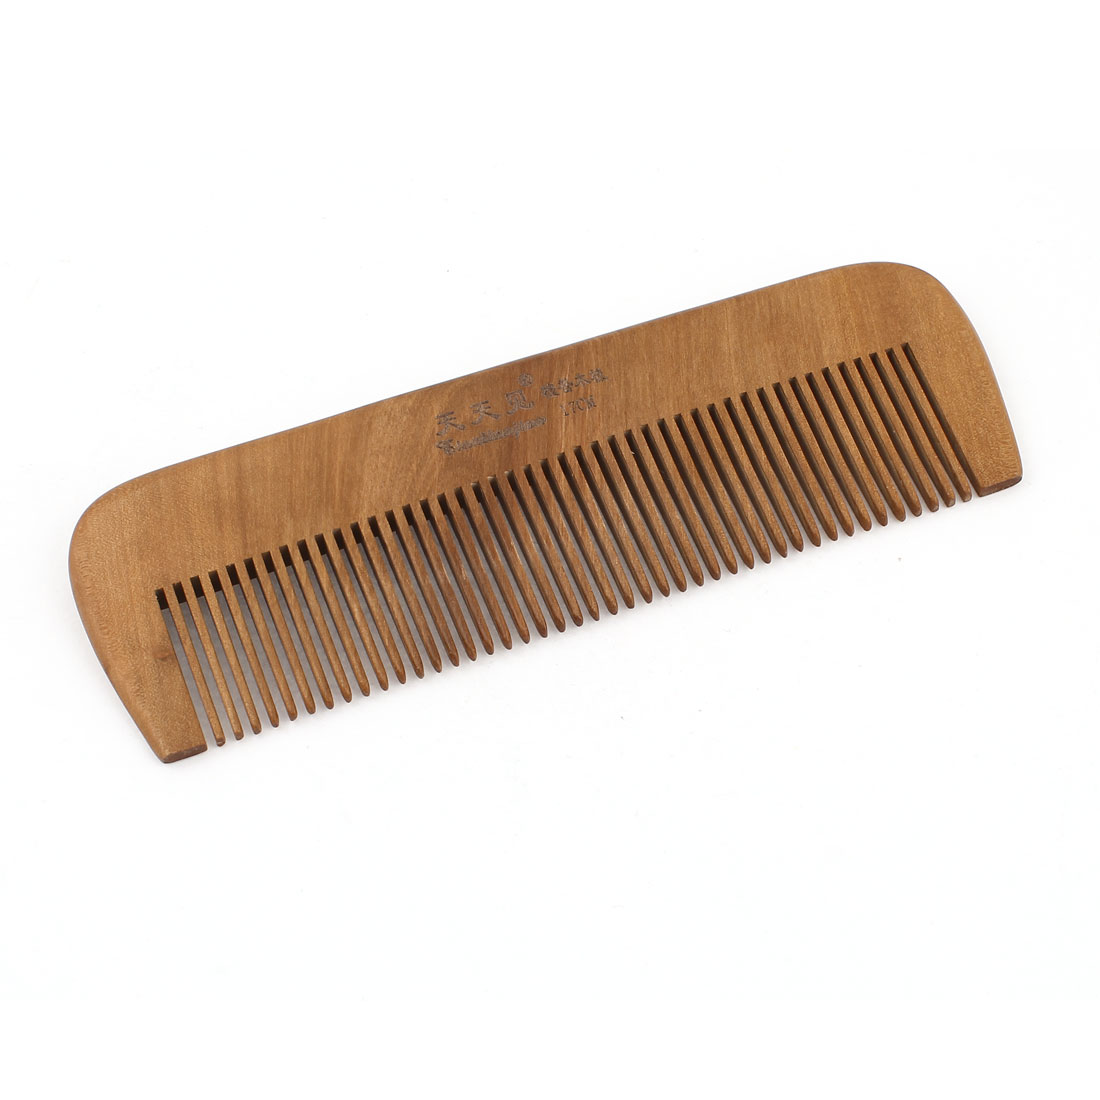 "Portable Wooden Natural Healthy Hair Care Hand Craft Comb 6.5"" Length"